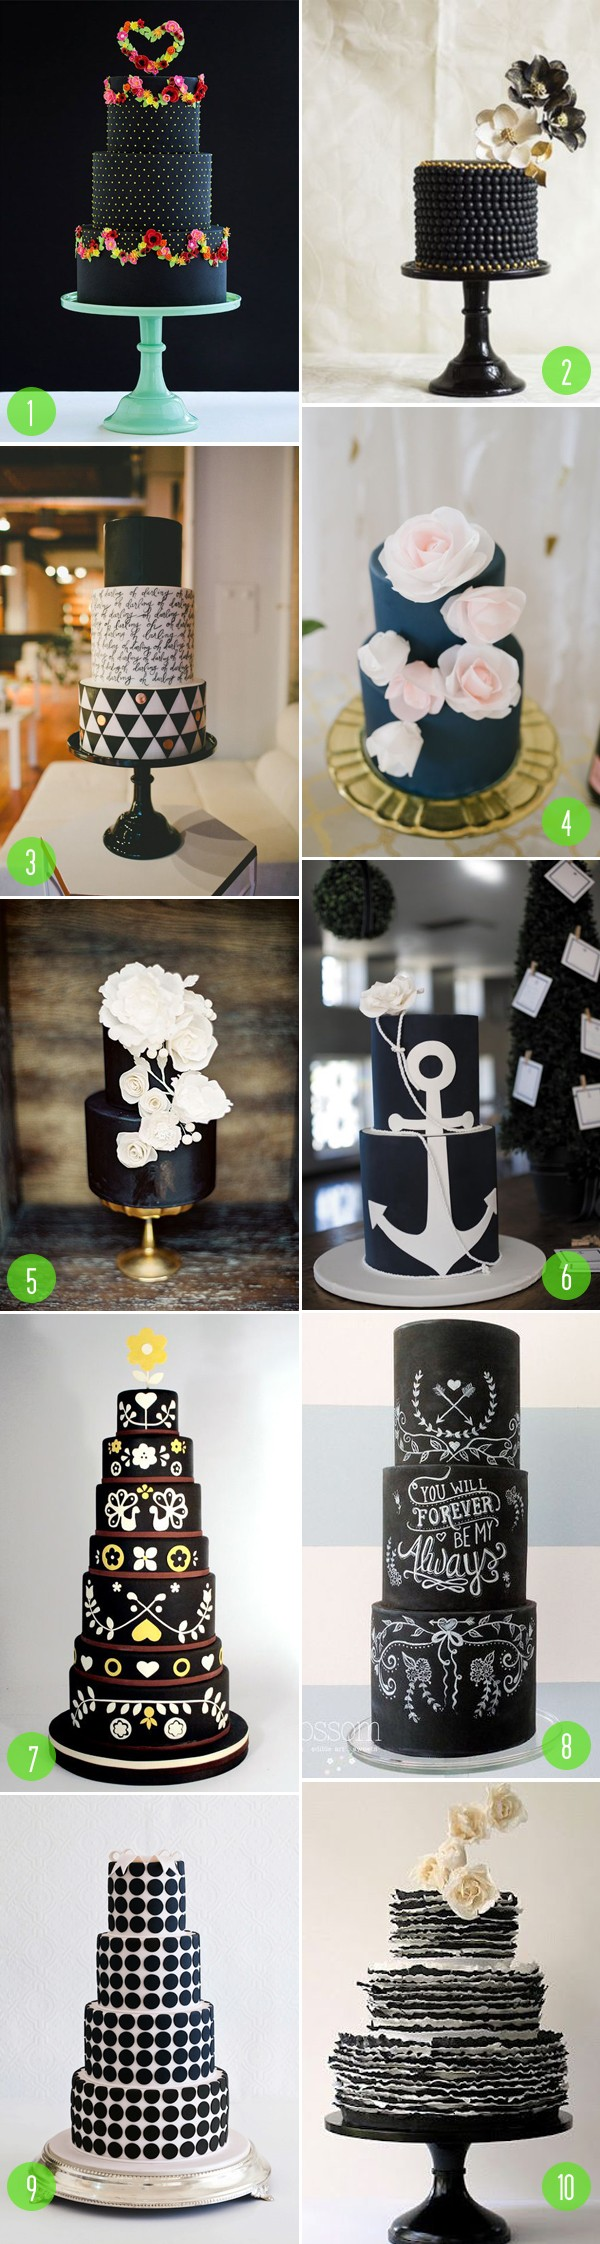 top 10: black wedding cakes